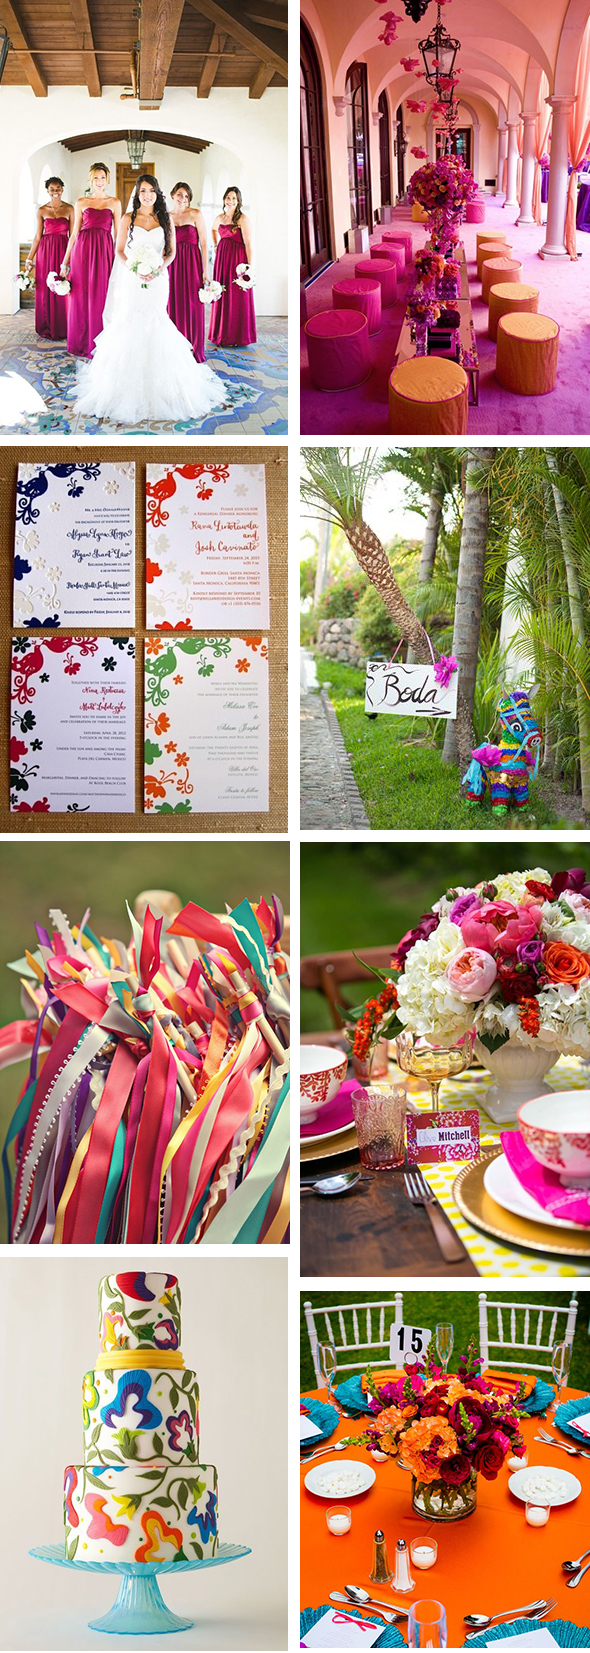 Colorful Wedding Decor Perfect For The Tropics The Destination